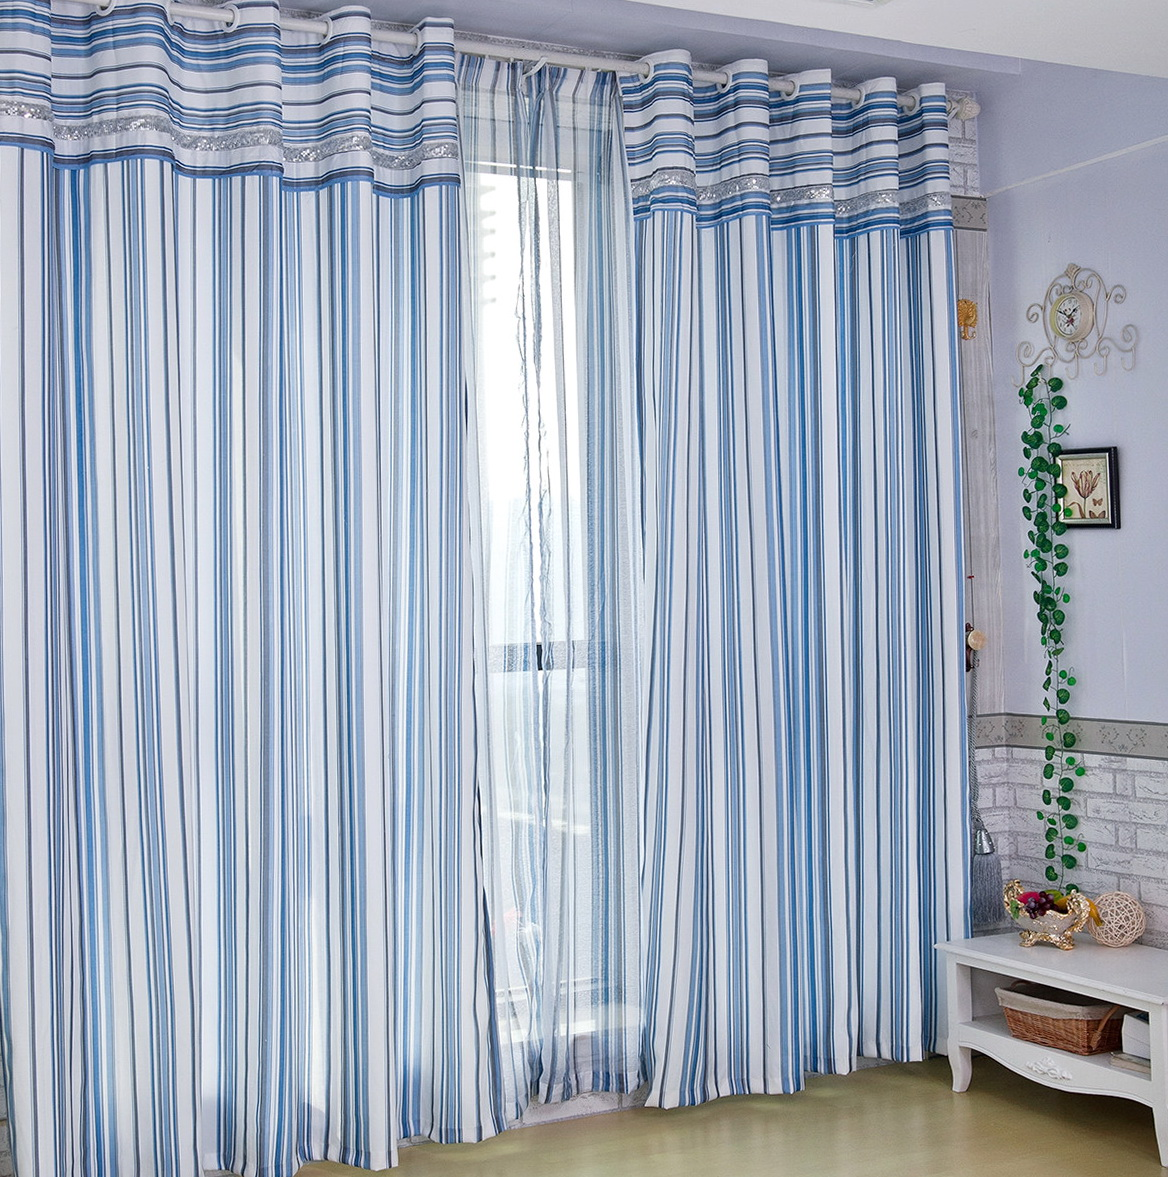 Blue Striped Curtains Bedroom Home Design Ideas